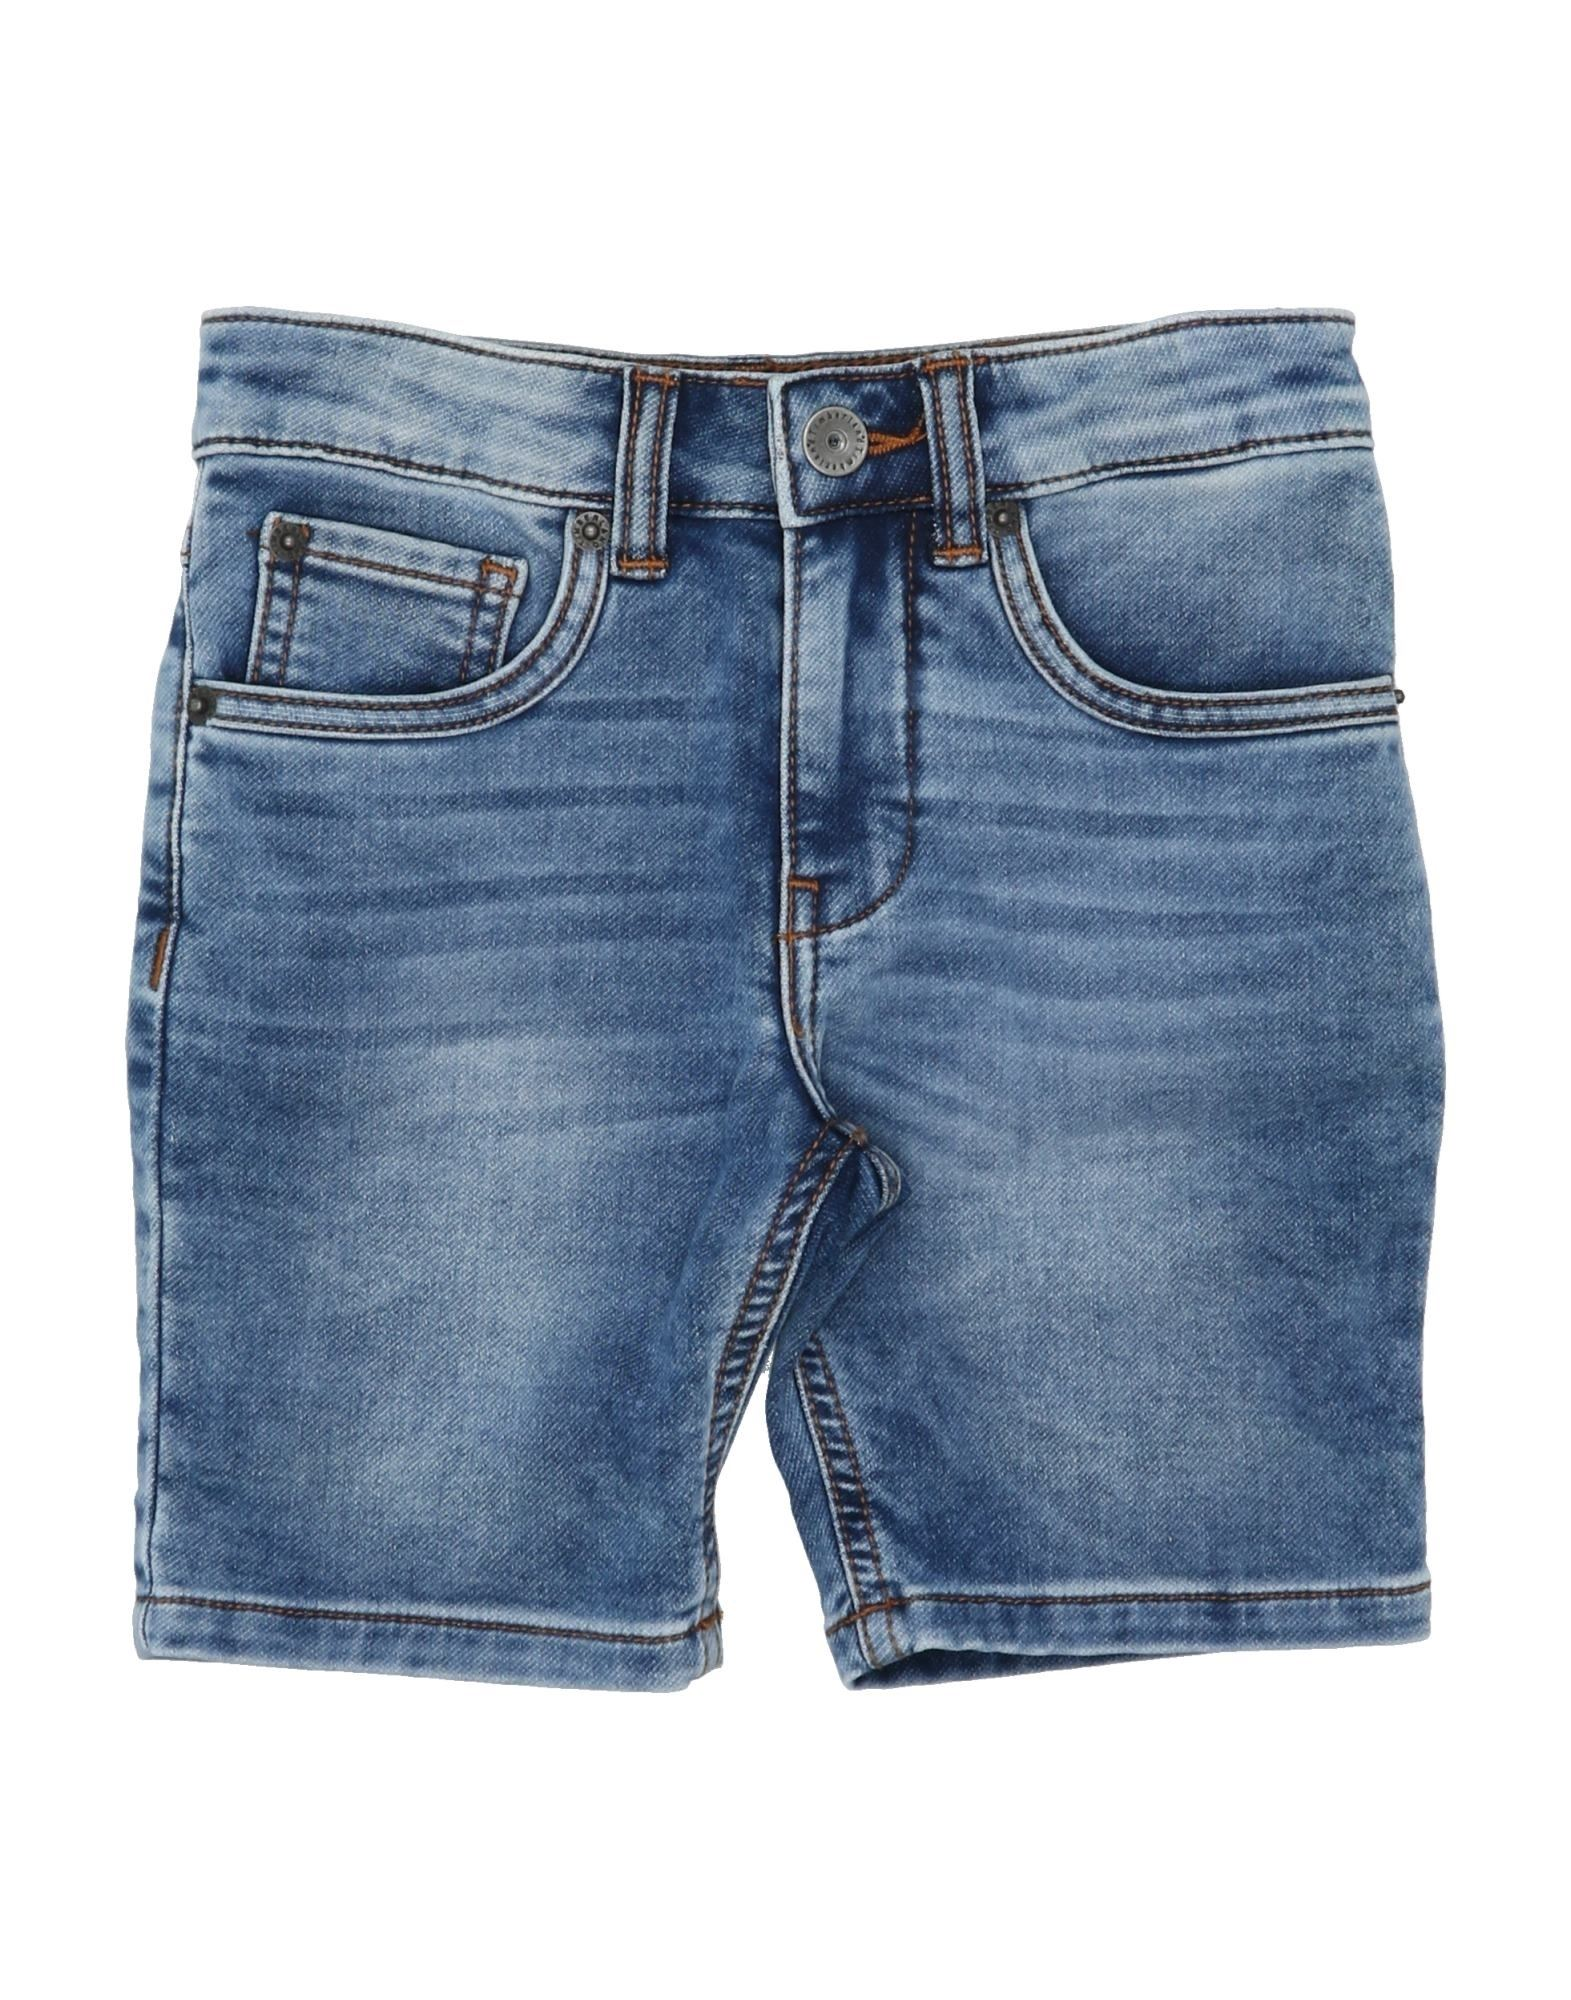 TIMBERLAND Denim bermudas - Item 42825742